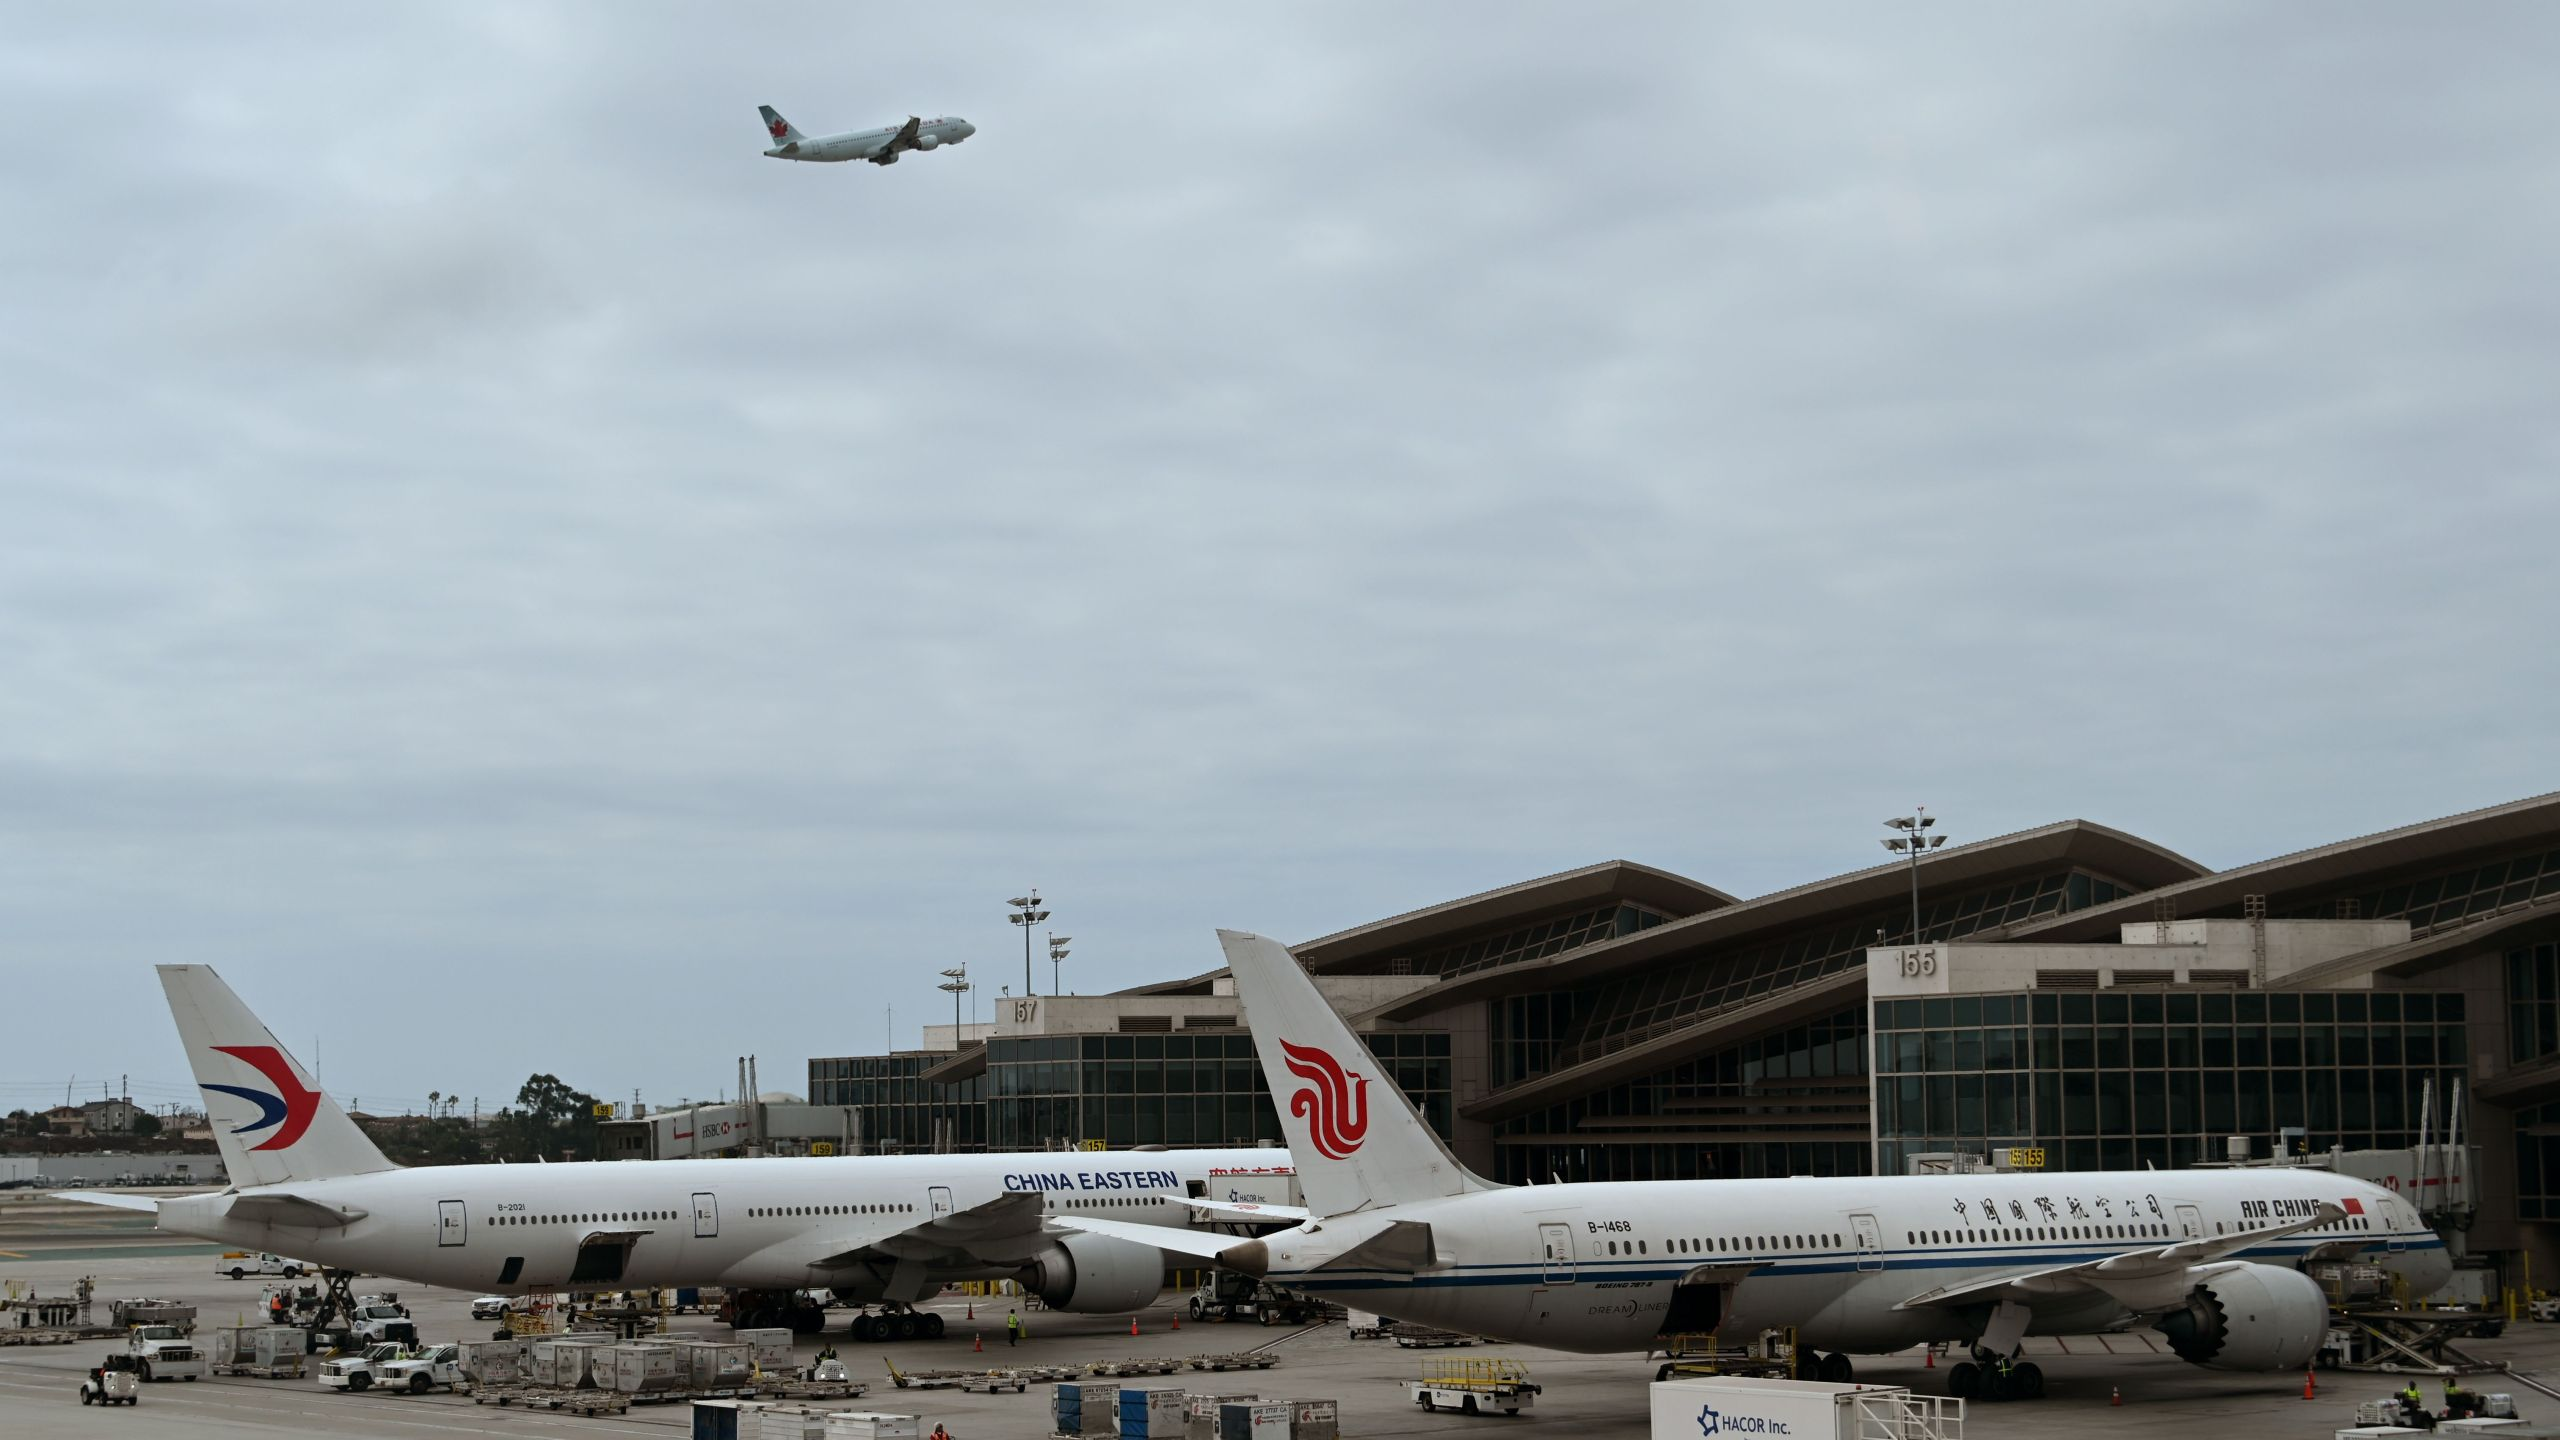 Air China and China Eastern planes wait at the gates at Los Angeles International Airport on Sept. 27, 2019. (DANIEL SLIM/AFP via Getty Images)